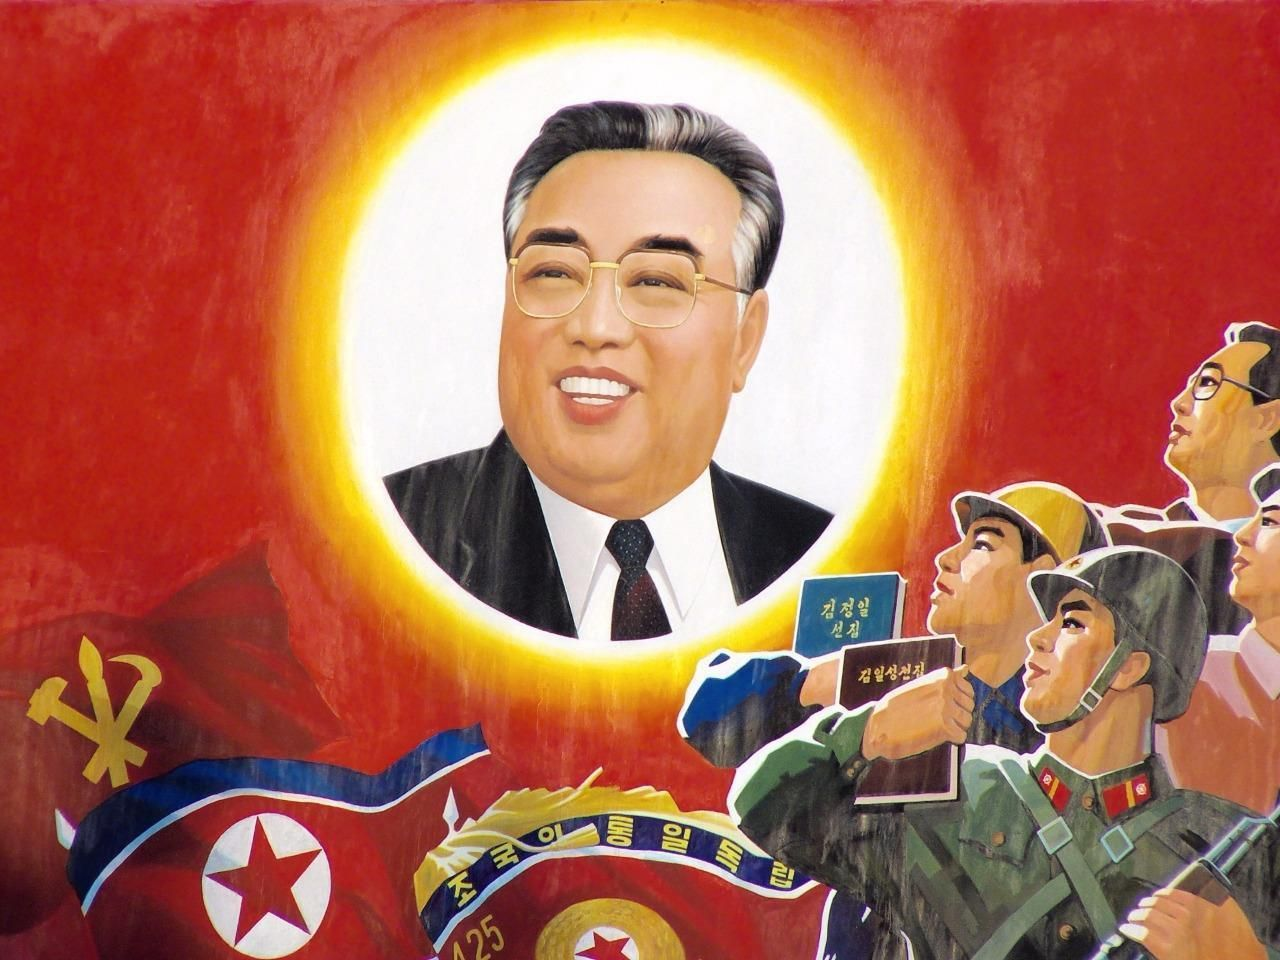 KIM IL SUNG GLOSSY POSTER PICTURE PHOTO PRINT evil dictator president nk 3088